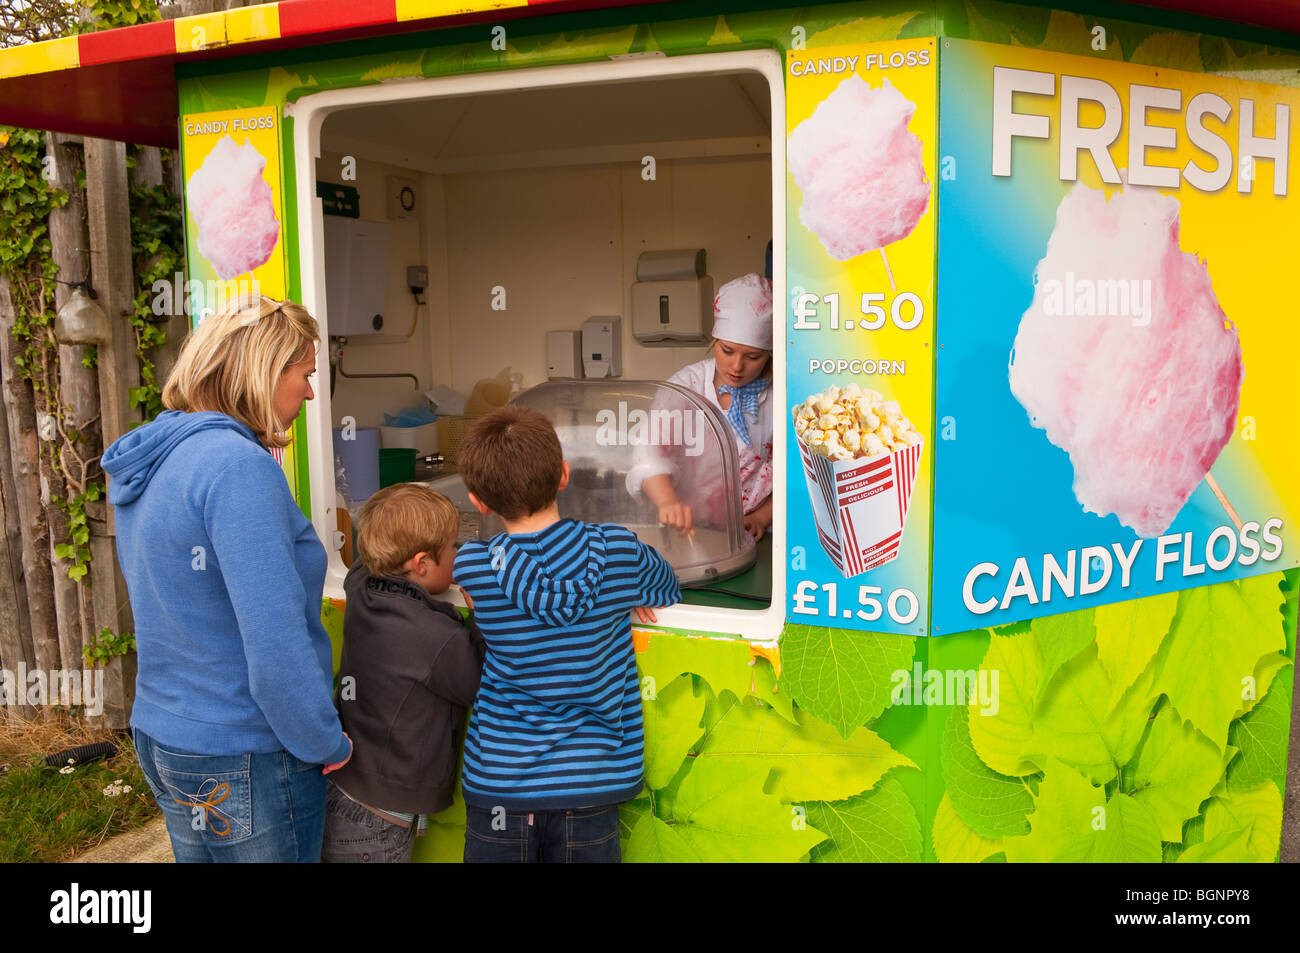 A mother buying candy floss for her children at a Uk stall - Stock Image